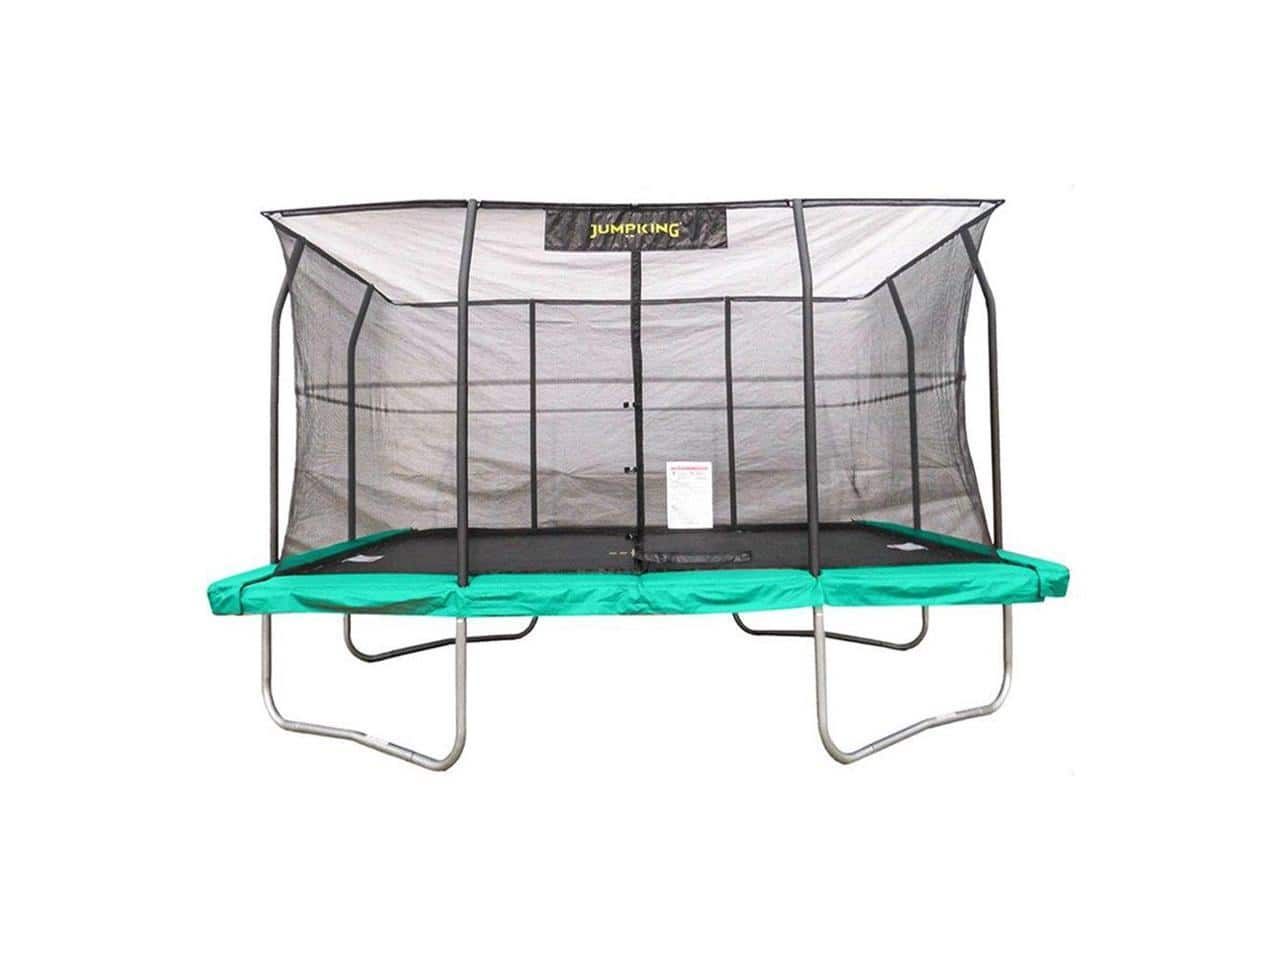 JumpKing 10 x 14 Rectangular Trampoline with Safety Net Siding - $399.99 - Free 2 Day Shipping